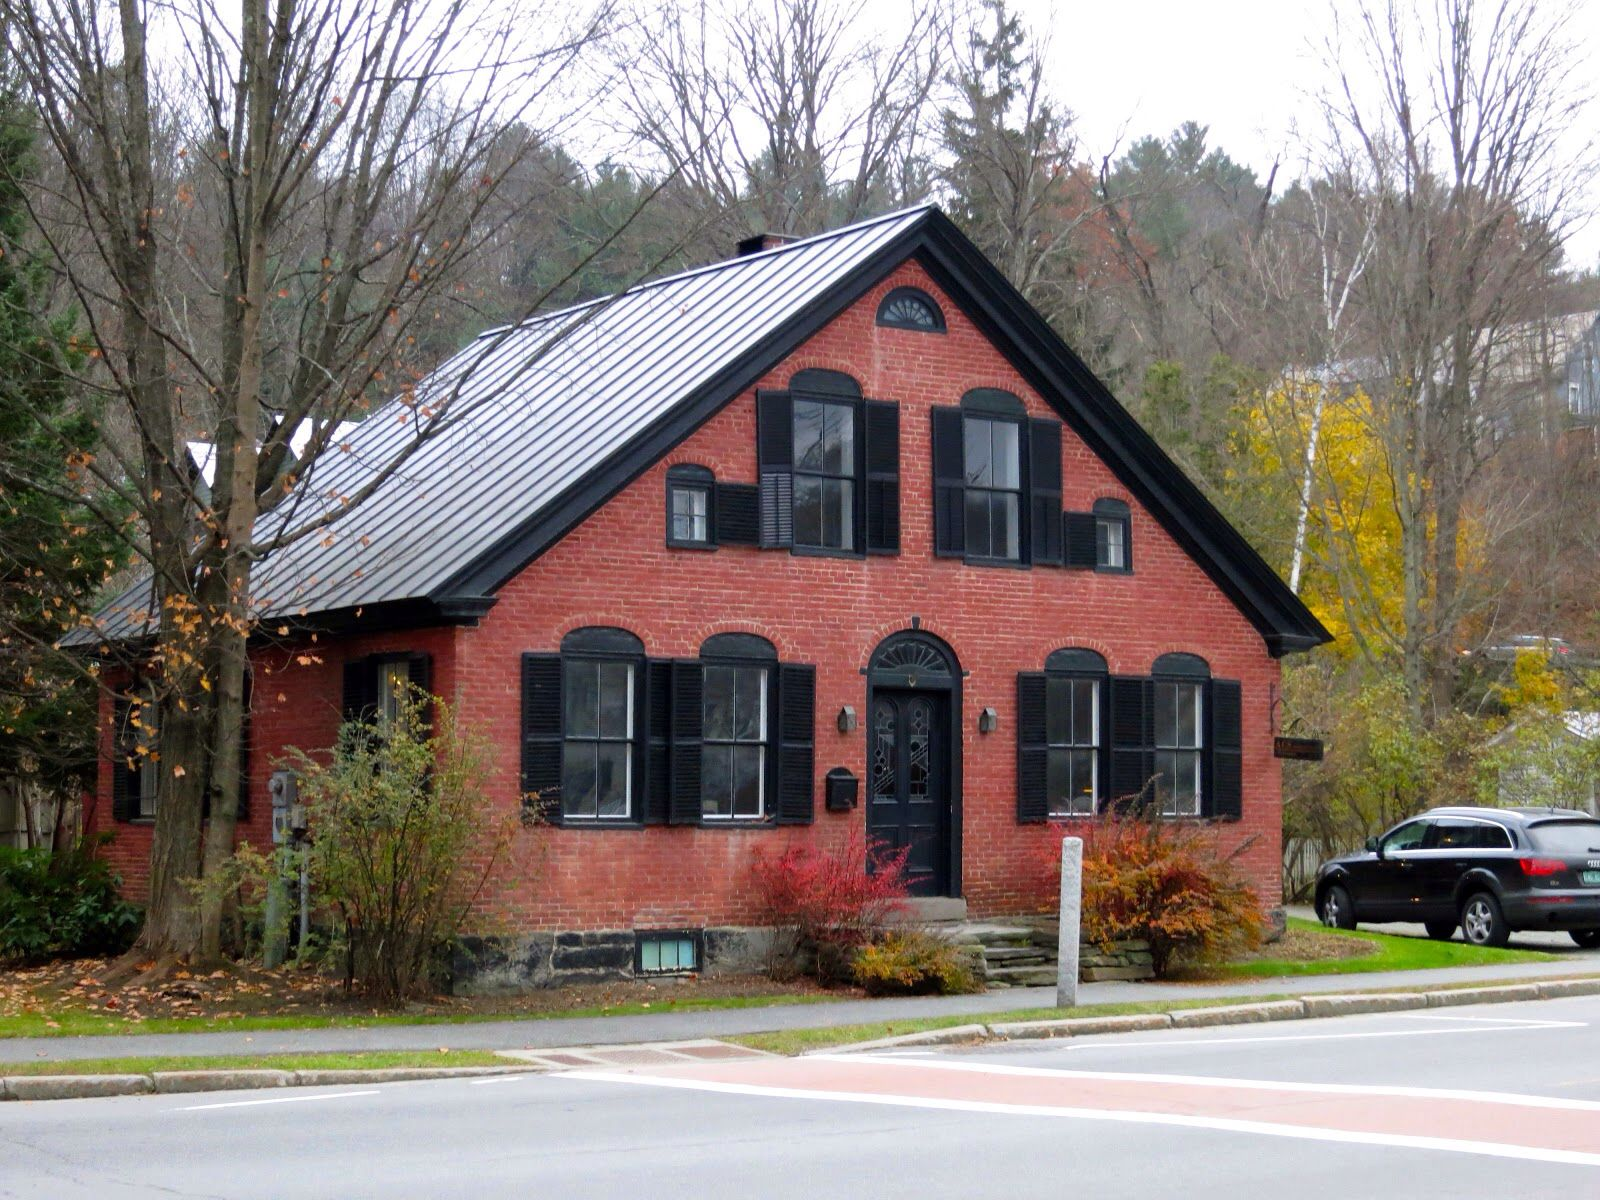 House With Black Trim